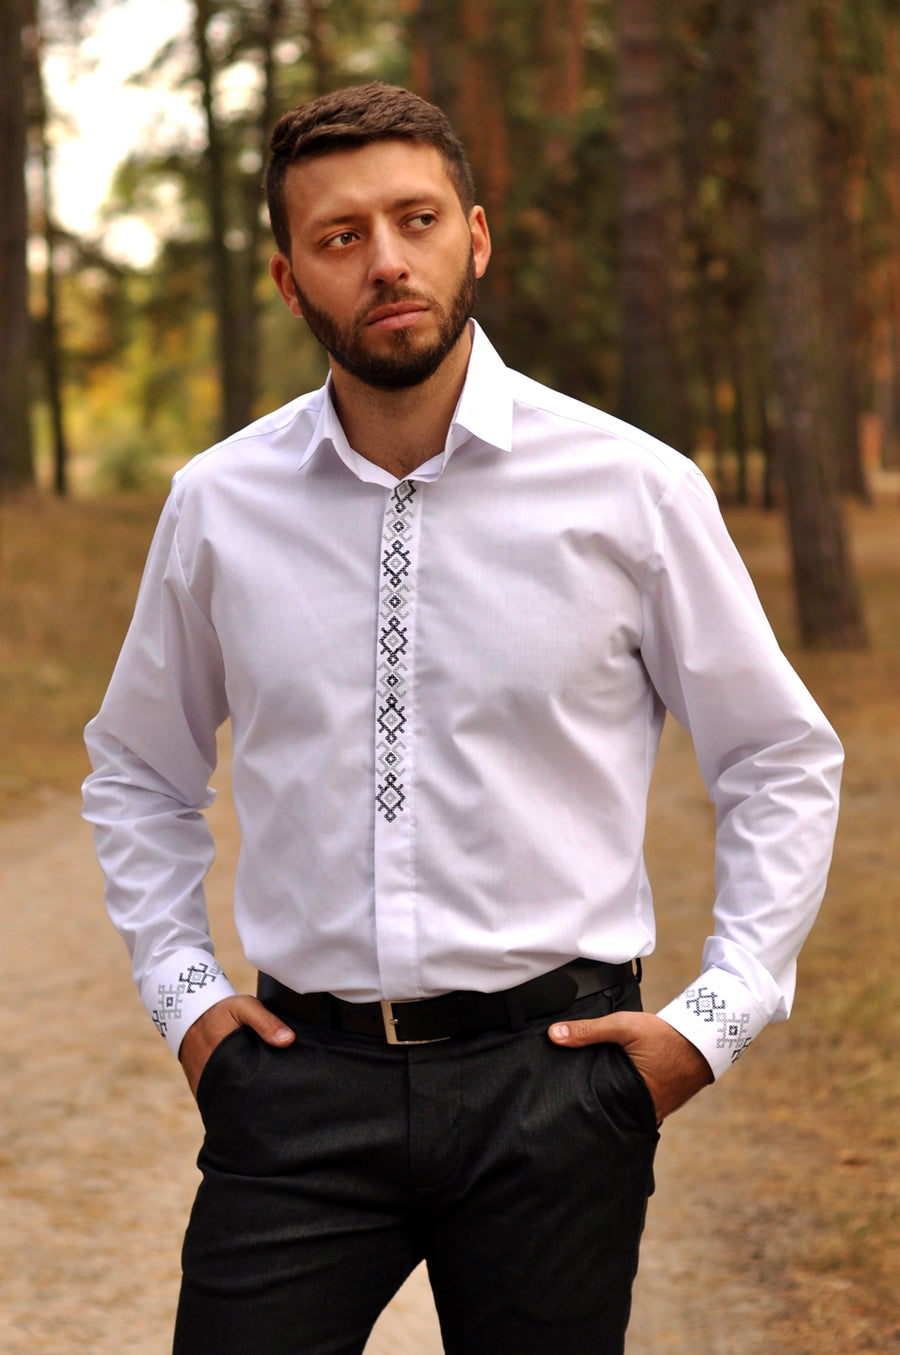 Classic embroidered wedding white shirt for an elegant man